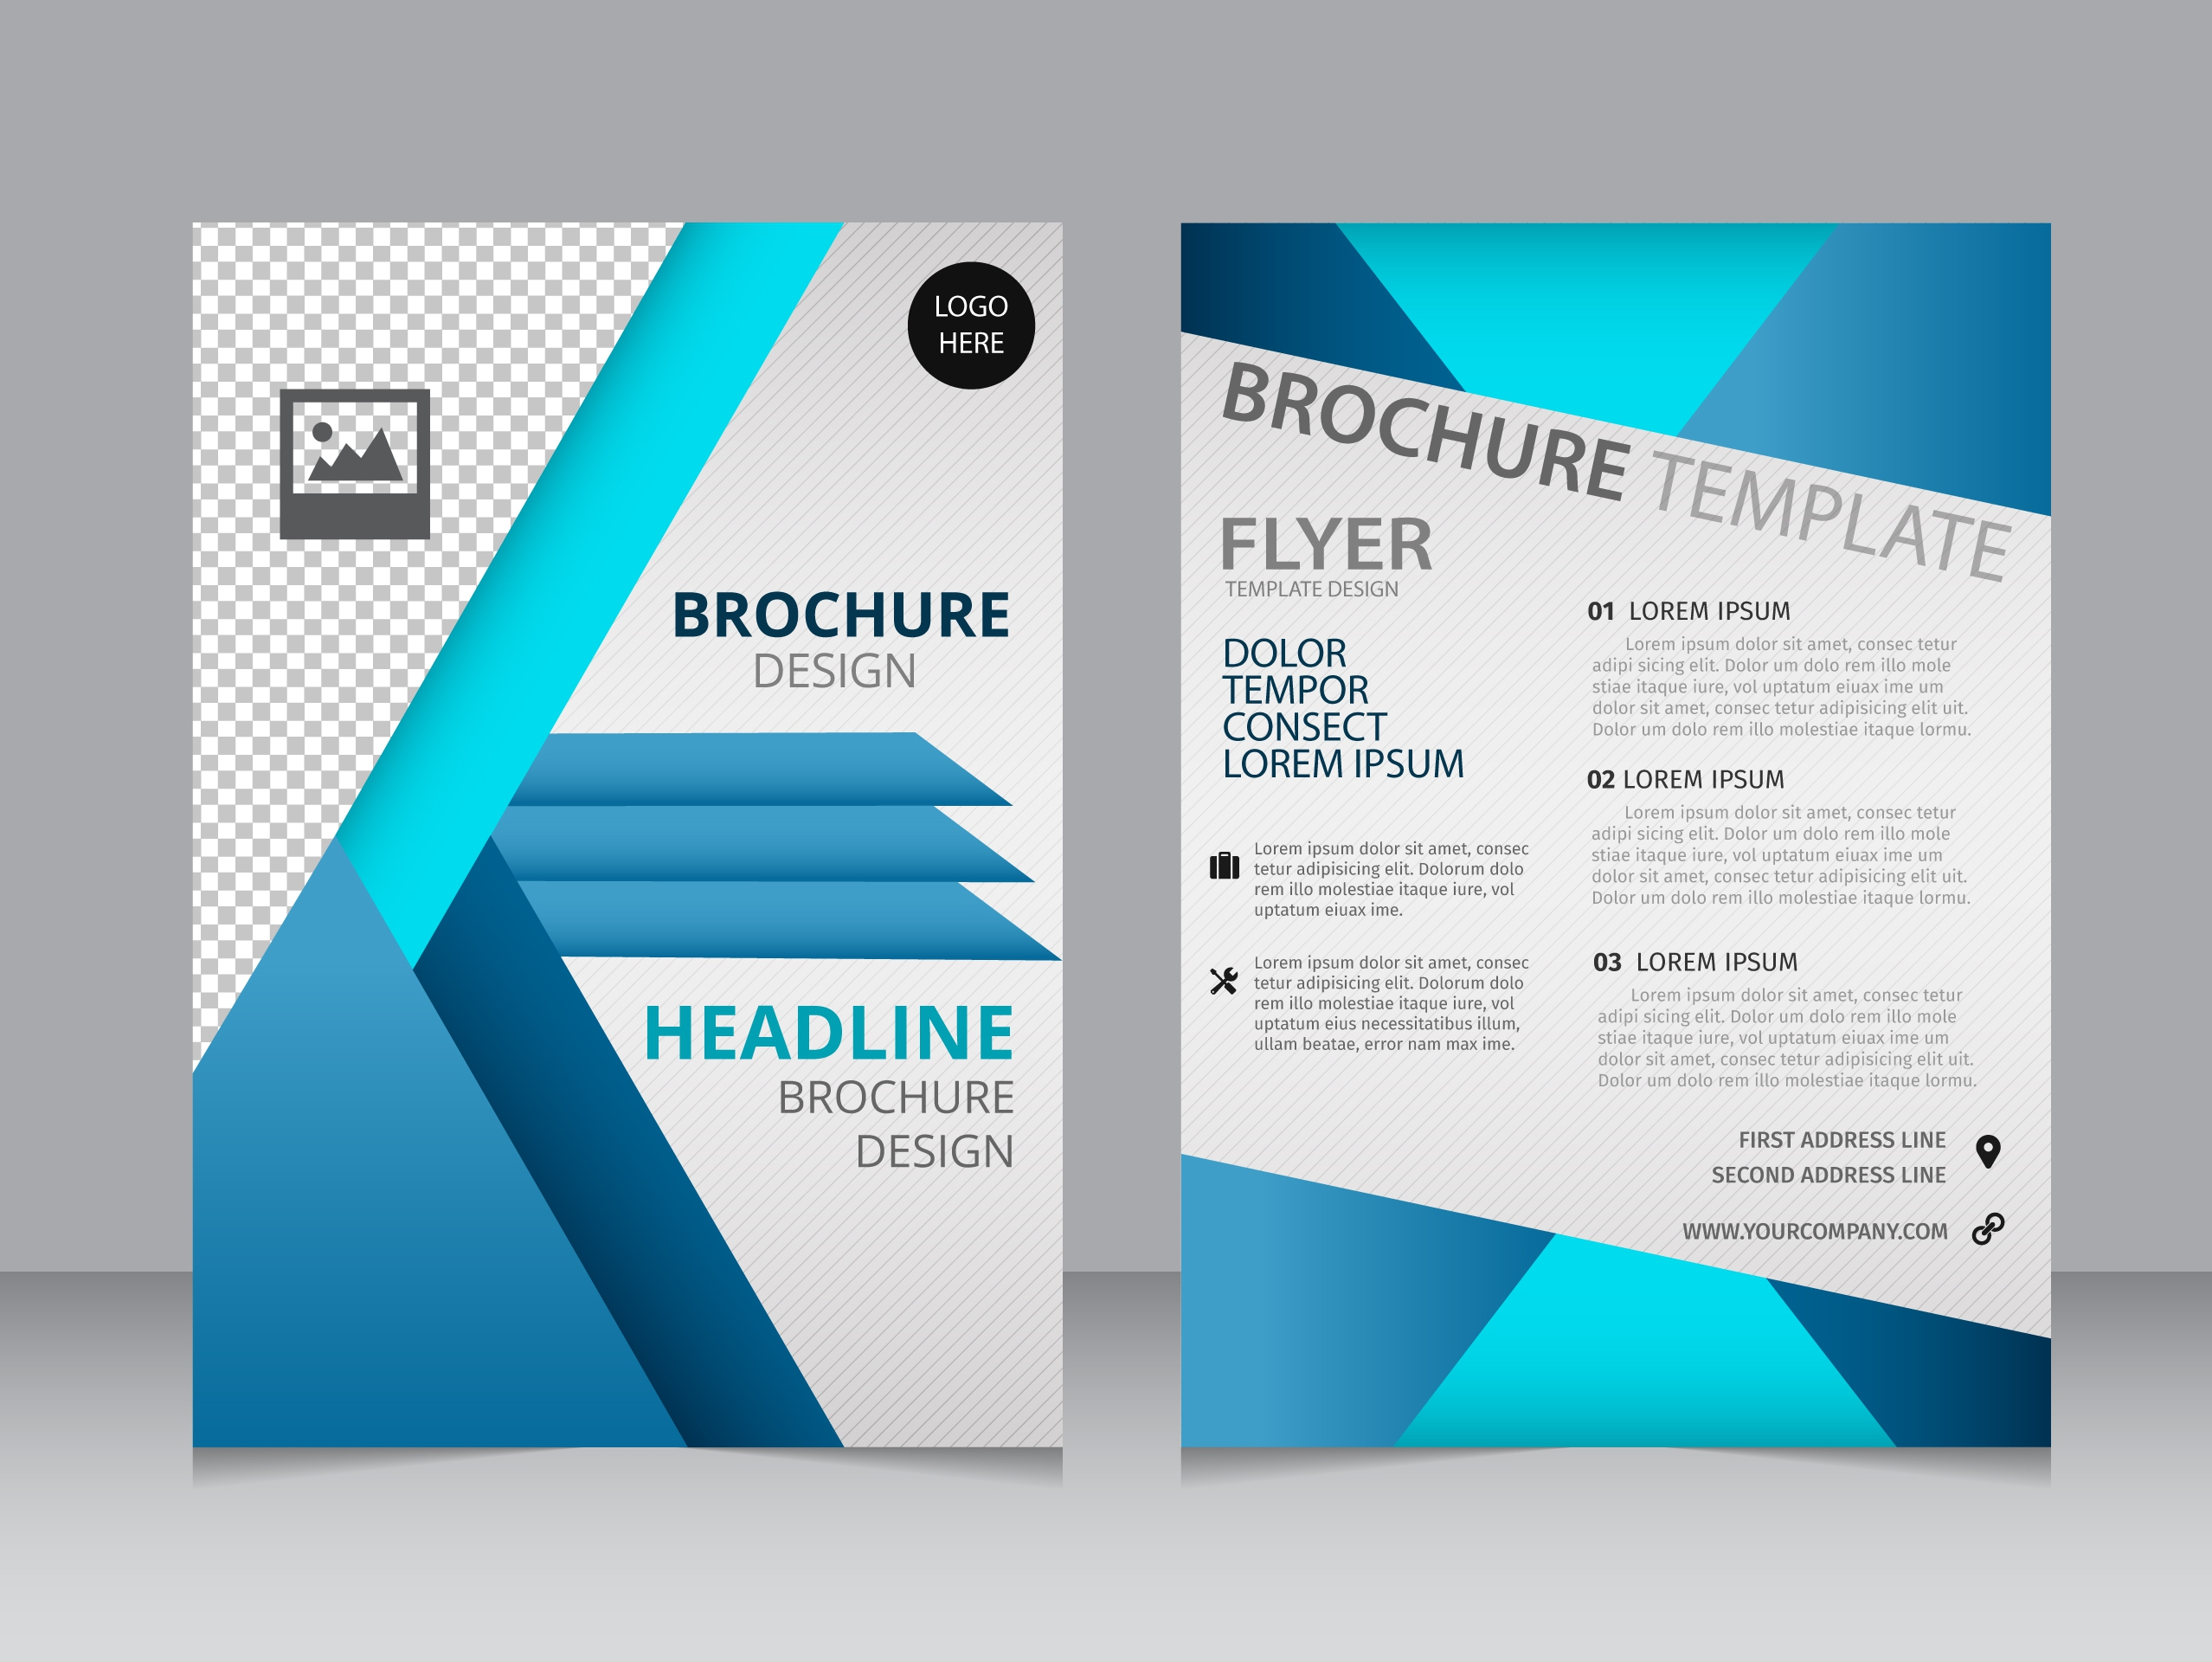 brochure psd templates - 11 free sample travel brochure templates printable samples